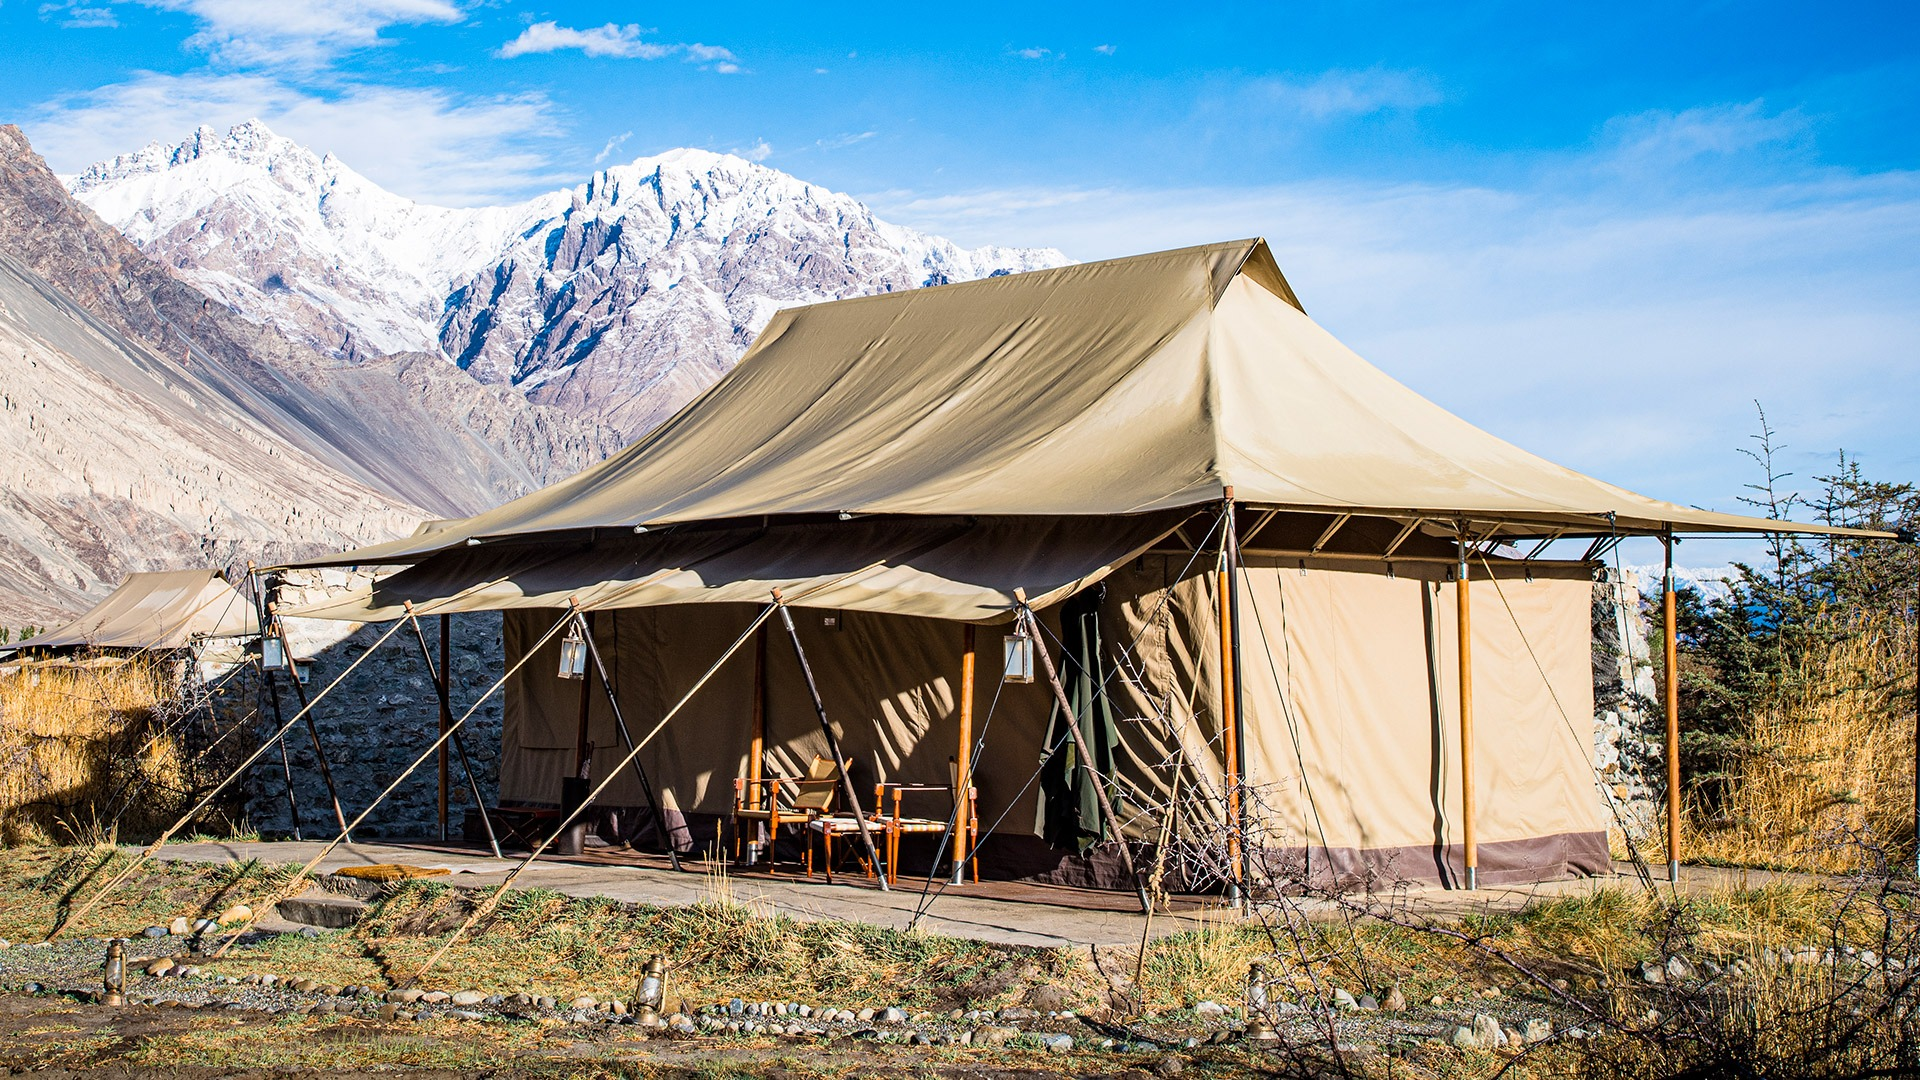 View from tented camp in the Nubra Valley, Ladakh, India